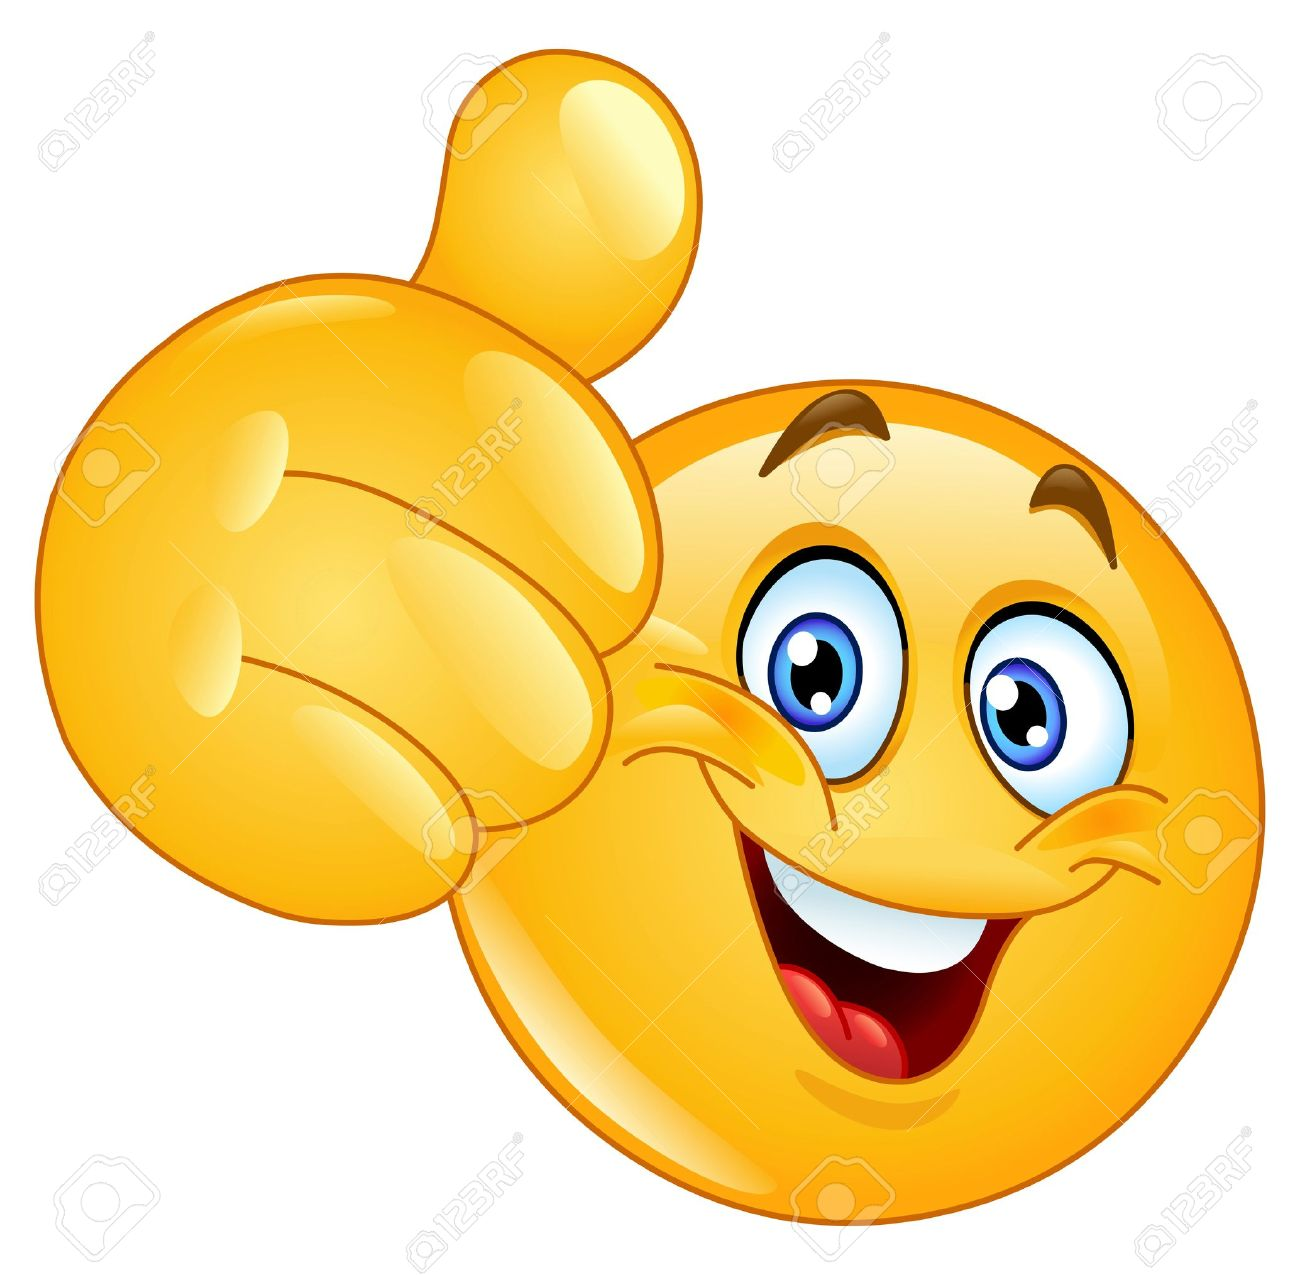 Emoticon showing thumb up - 16537110